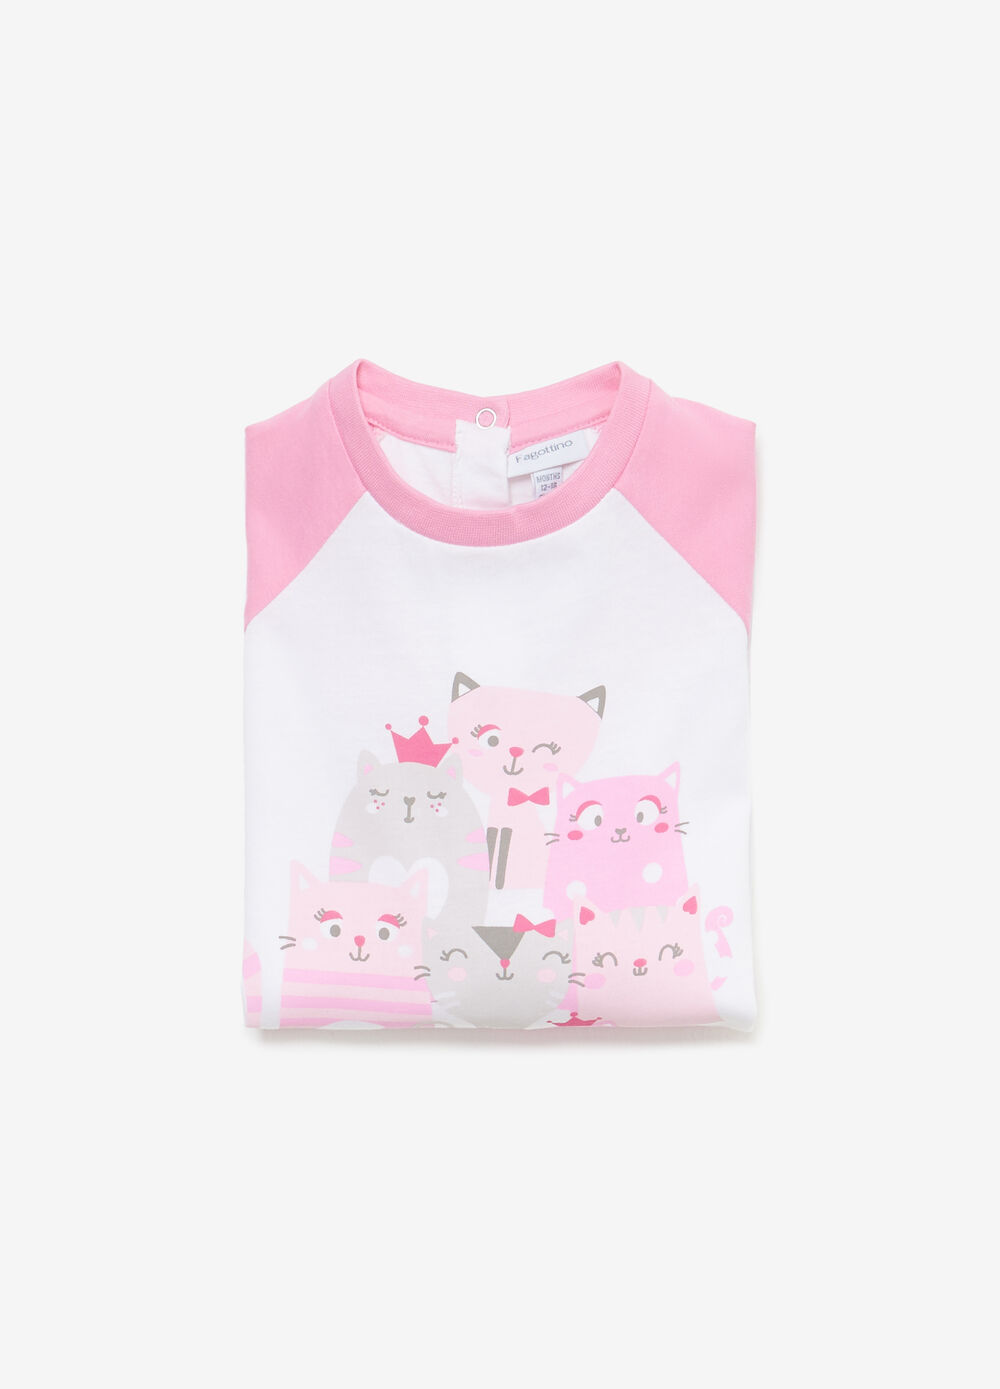 Cotton sleepsuit with kittens print